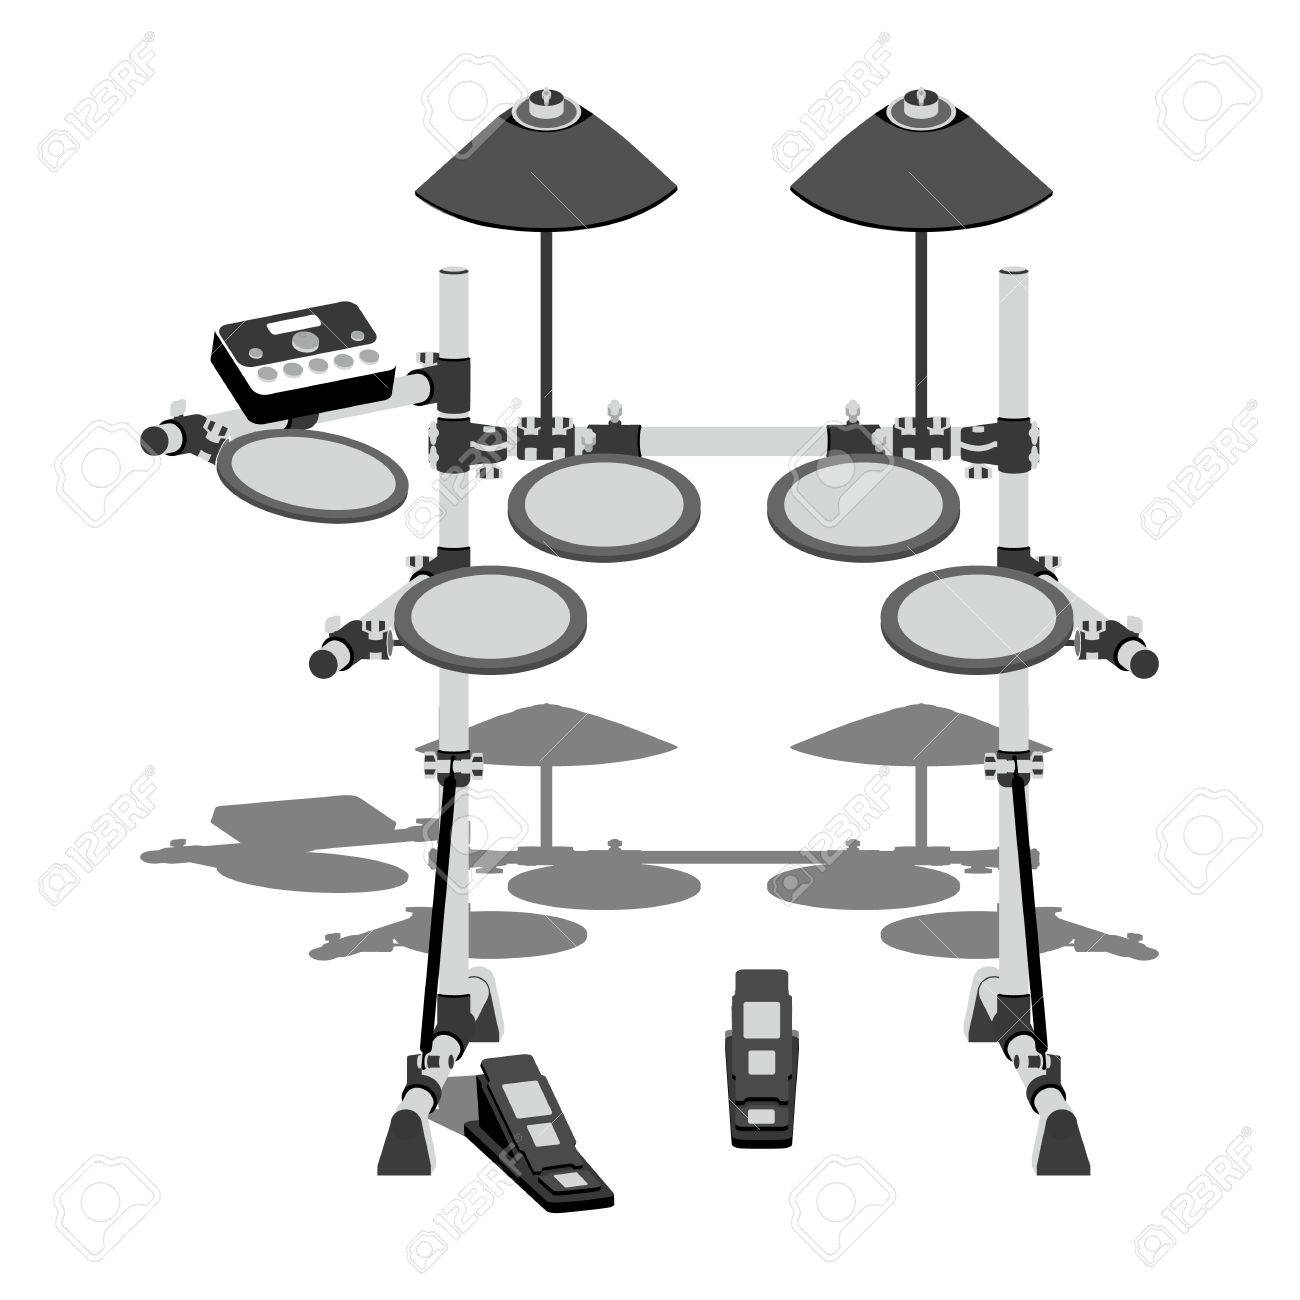 Illustration of electric drum kit with a controller and pedals